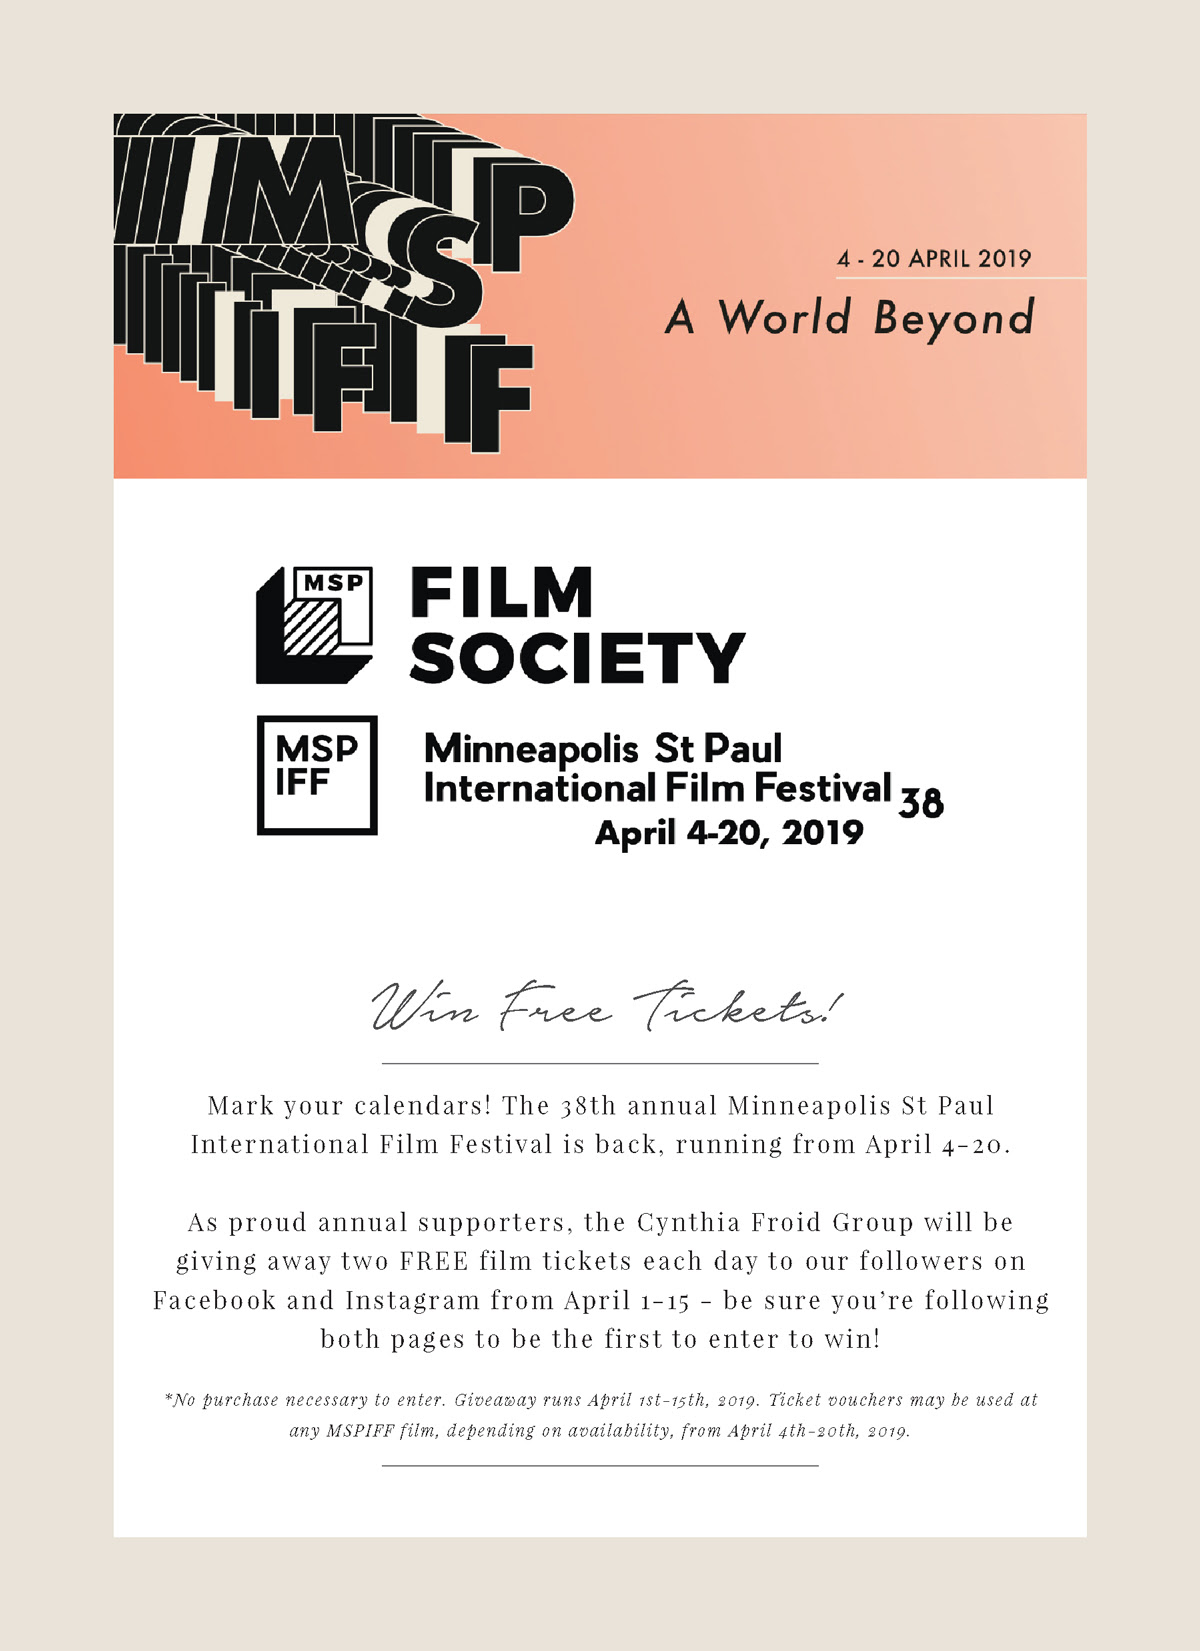 MSP International Film Festival Ticket Giveaway! — Cynthia Froid Group